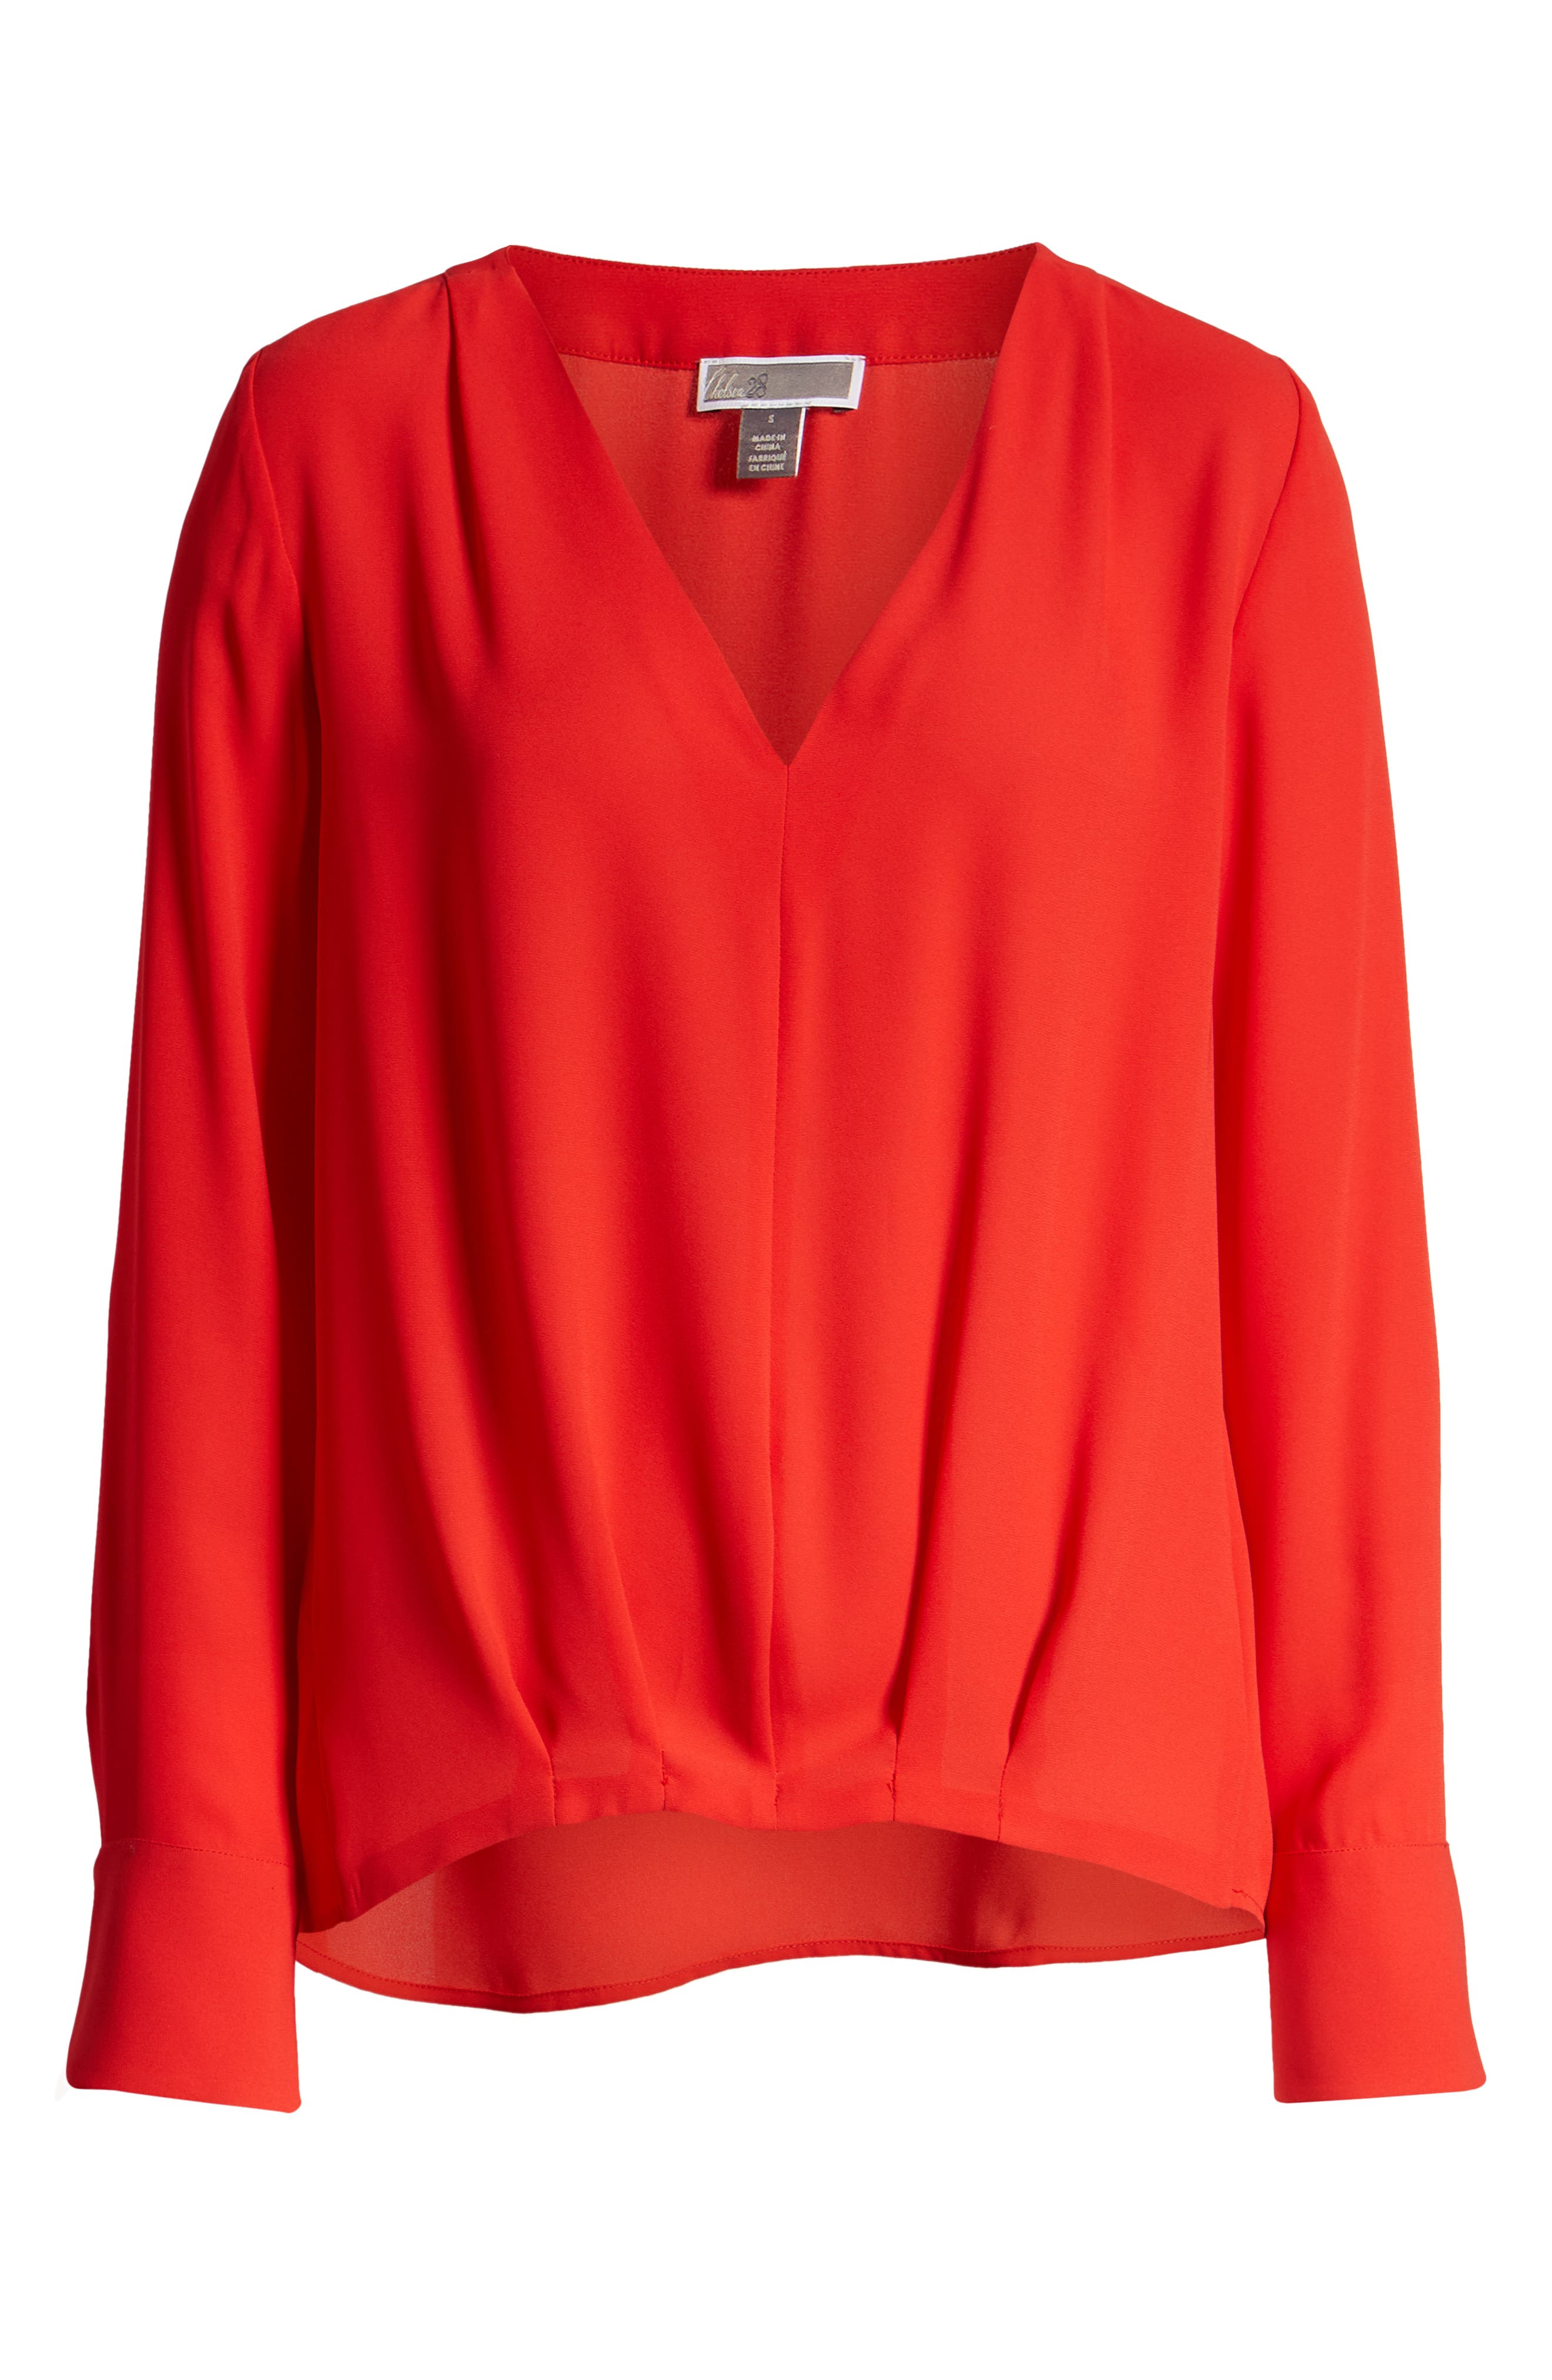 CHELSEA28, Tucked Top, Alternate thumbnail 6, color, RED CHINOISE